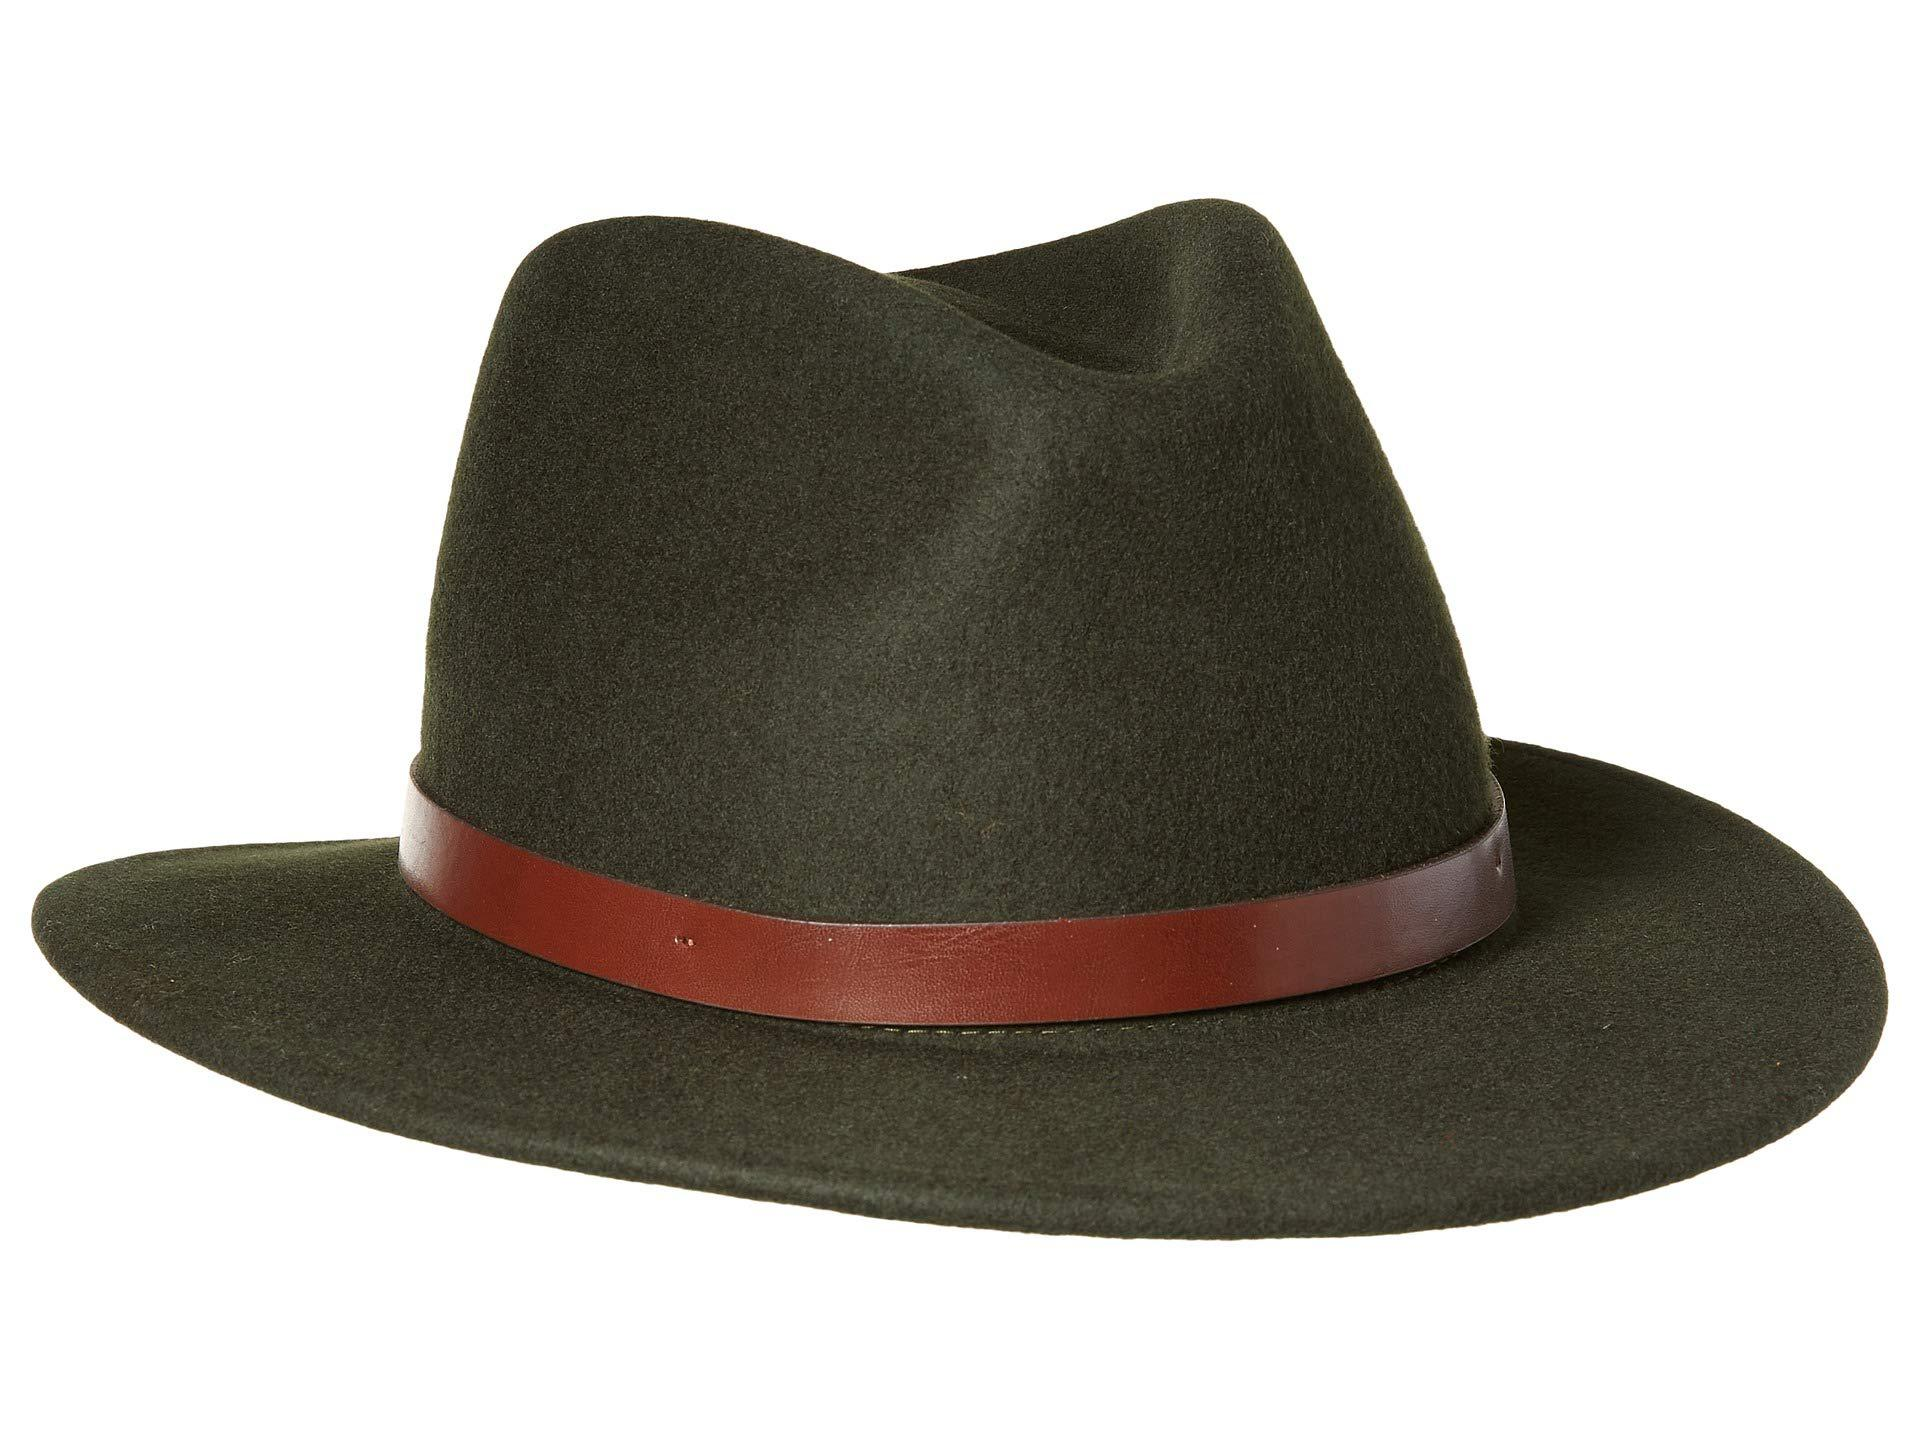 a31894d6908 Lyst - Brixton Messer Fedora (black) Fedora Hats in Black for Men